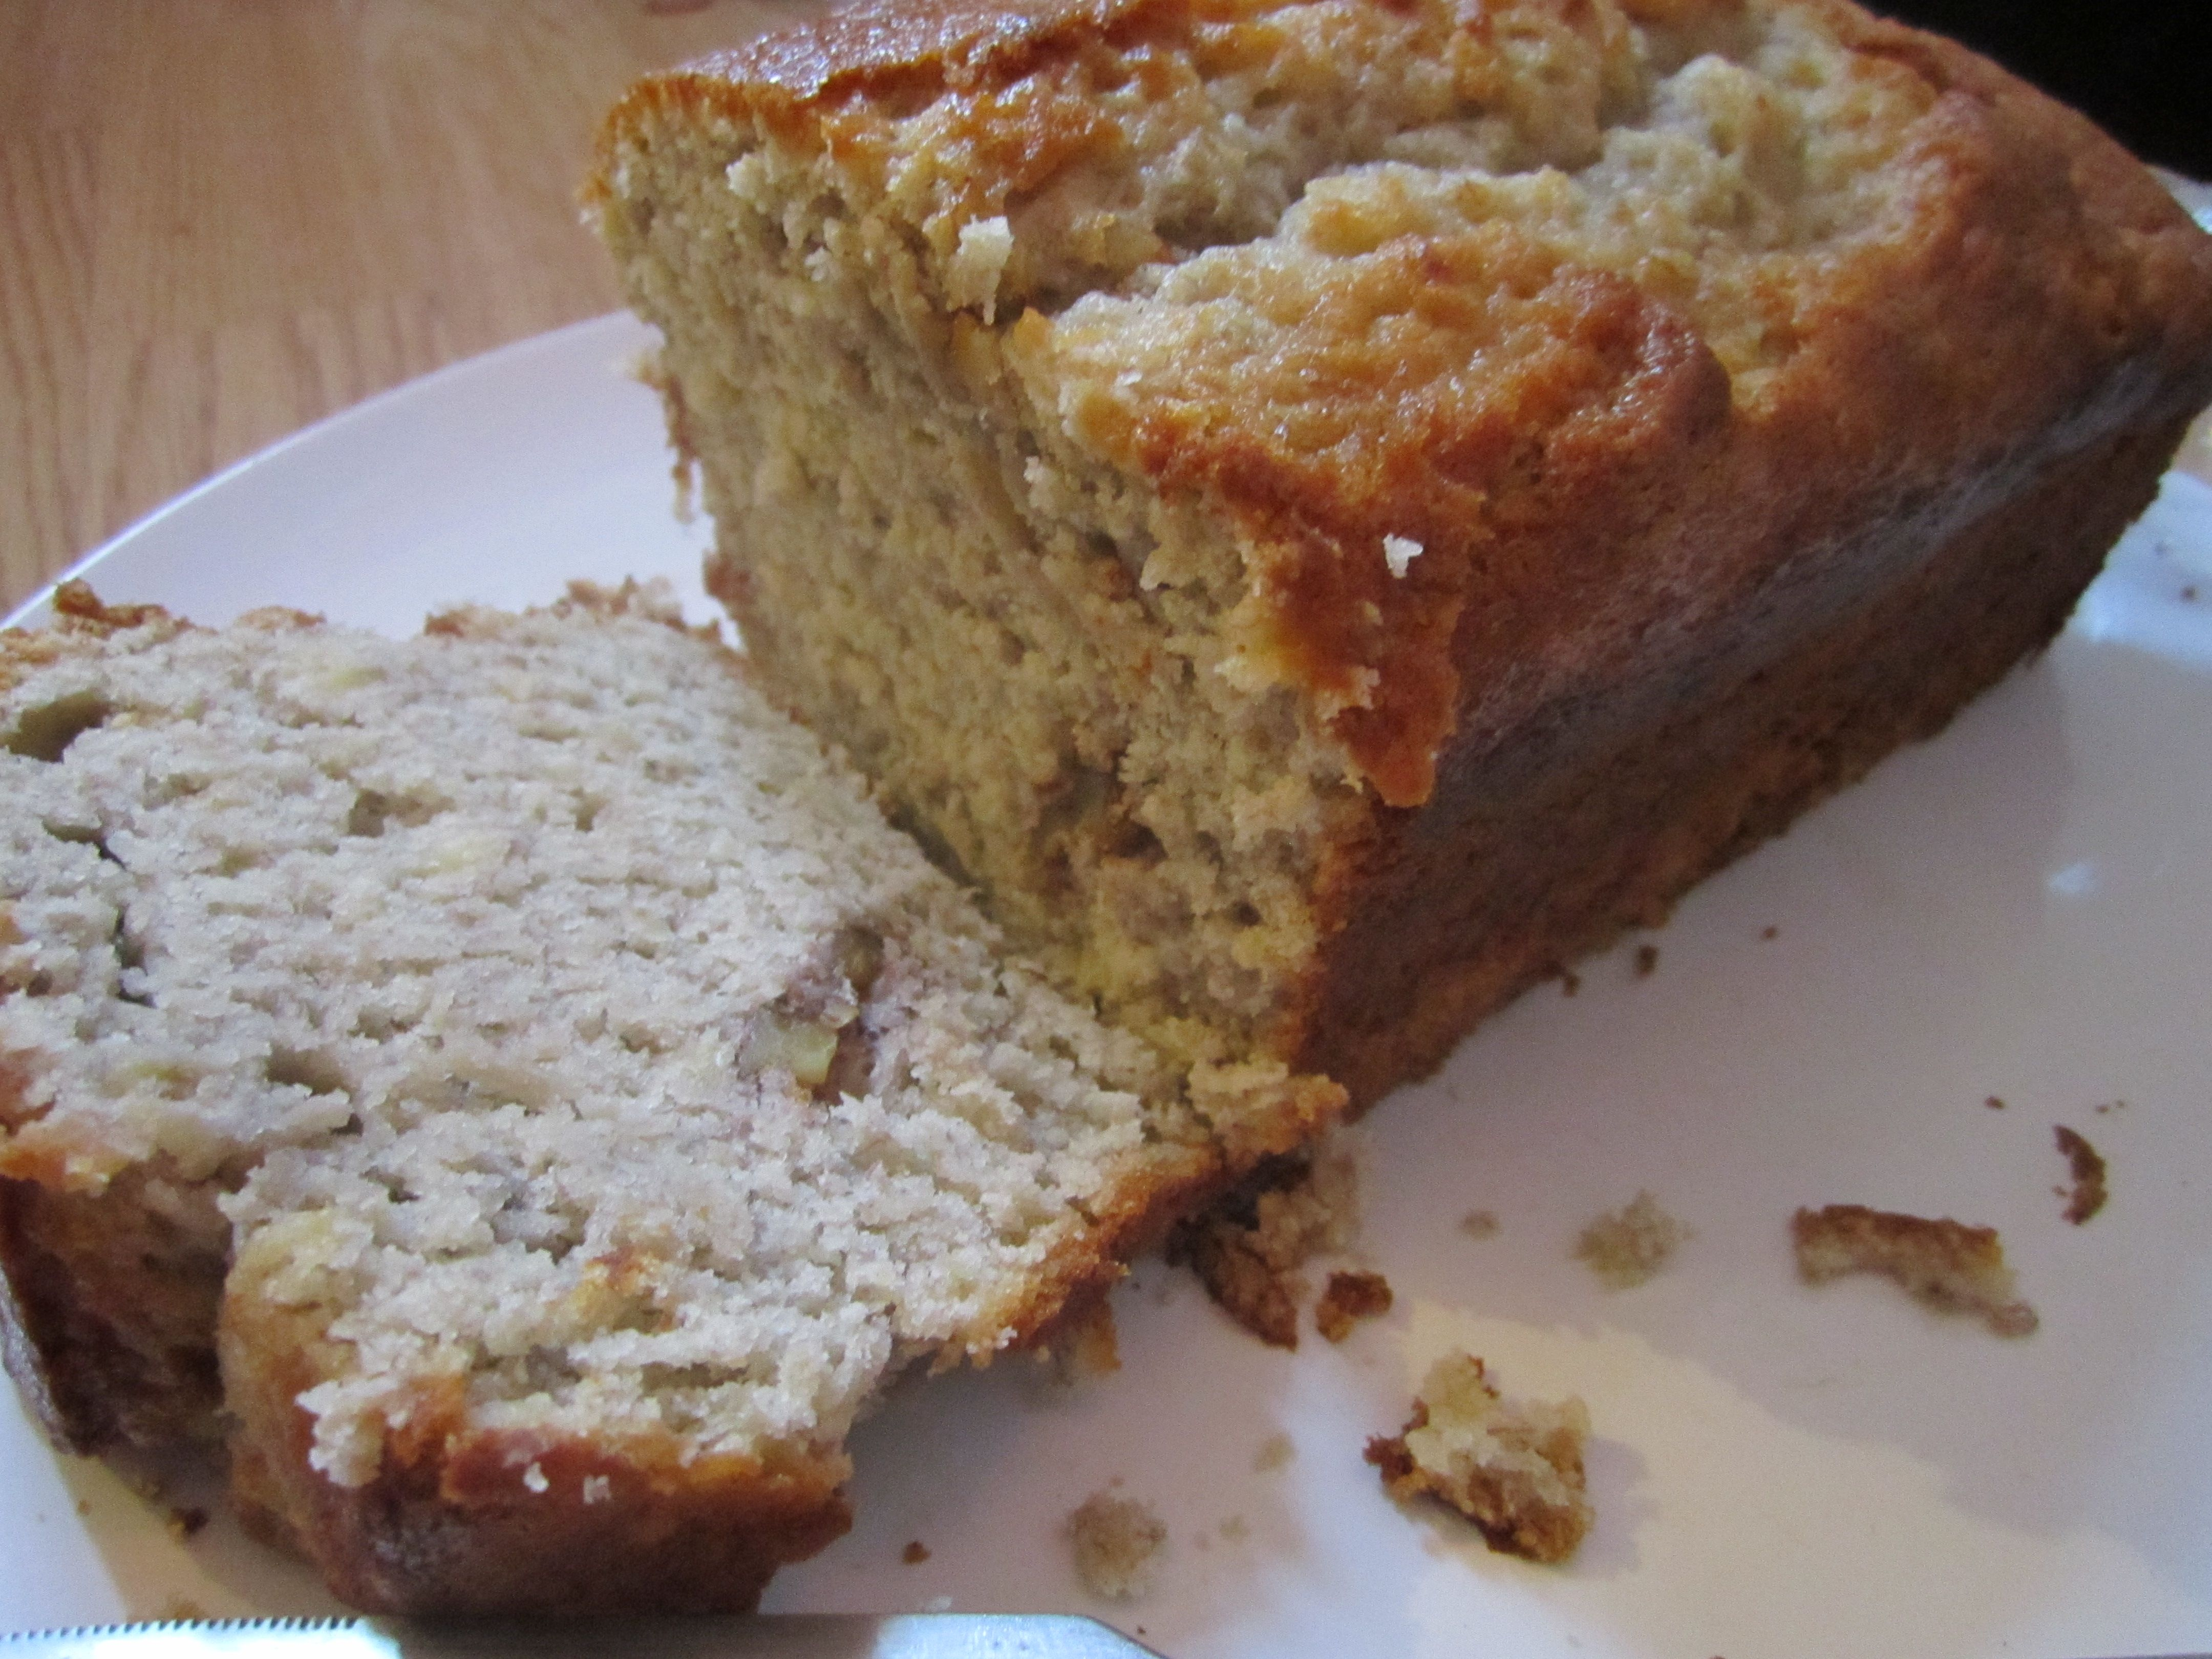 Banana loaf a recipe of paul hollywood yum yum food pinterest banana loaf a recipe of paul hollywood forumfinder Images